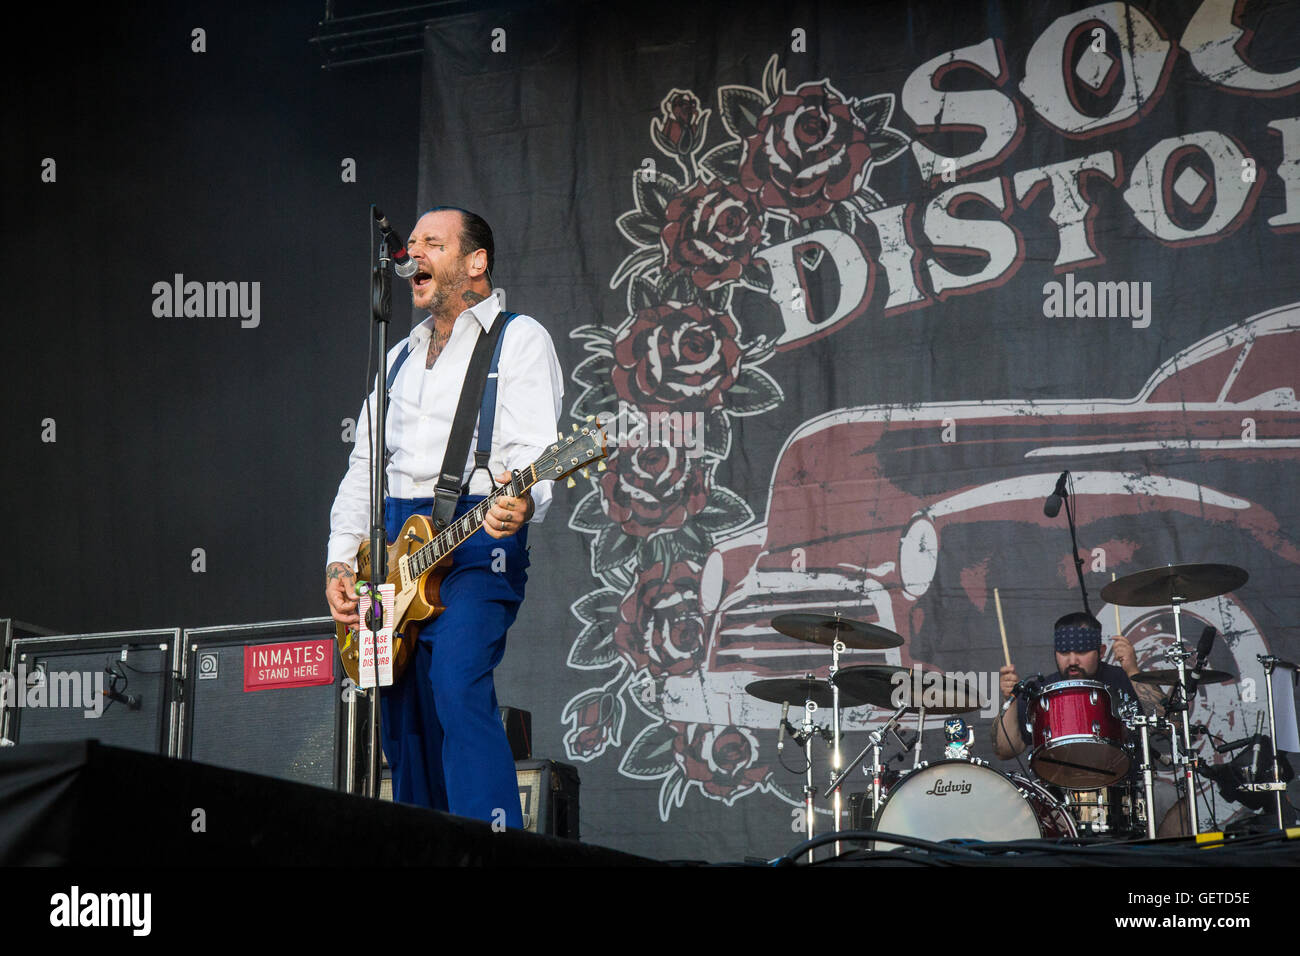 Rho Milan Italy. 15th June 2011. The American punk rock band SOCIAL DISTORTION performs live on stage at Arena Fiera - Stock Image